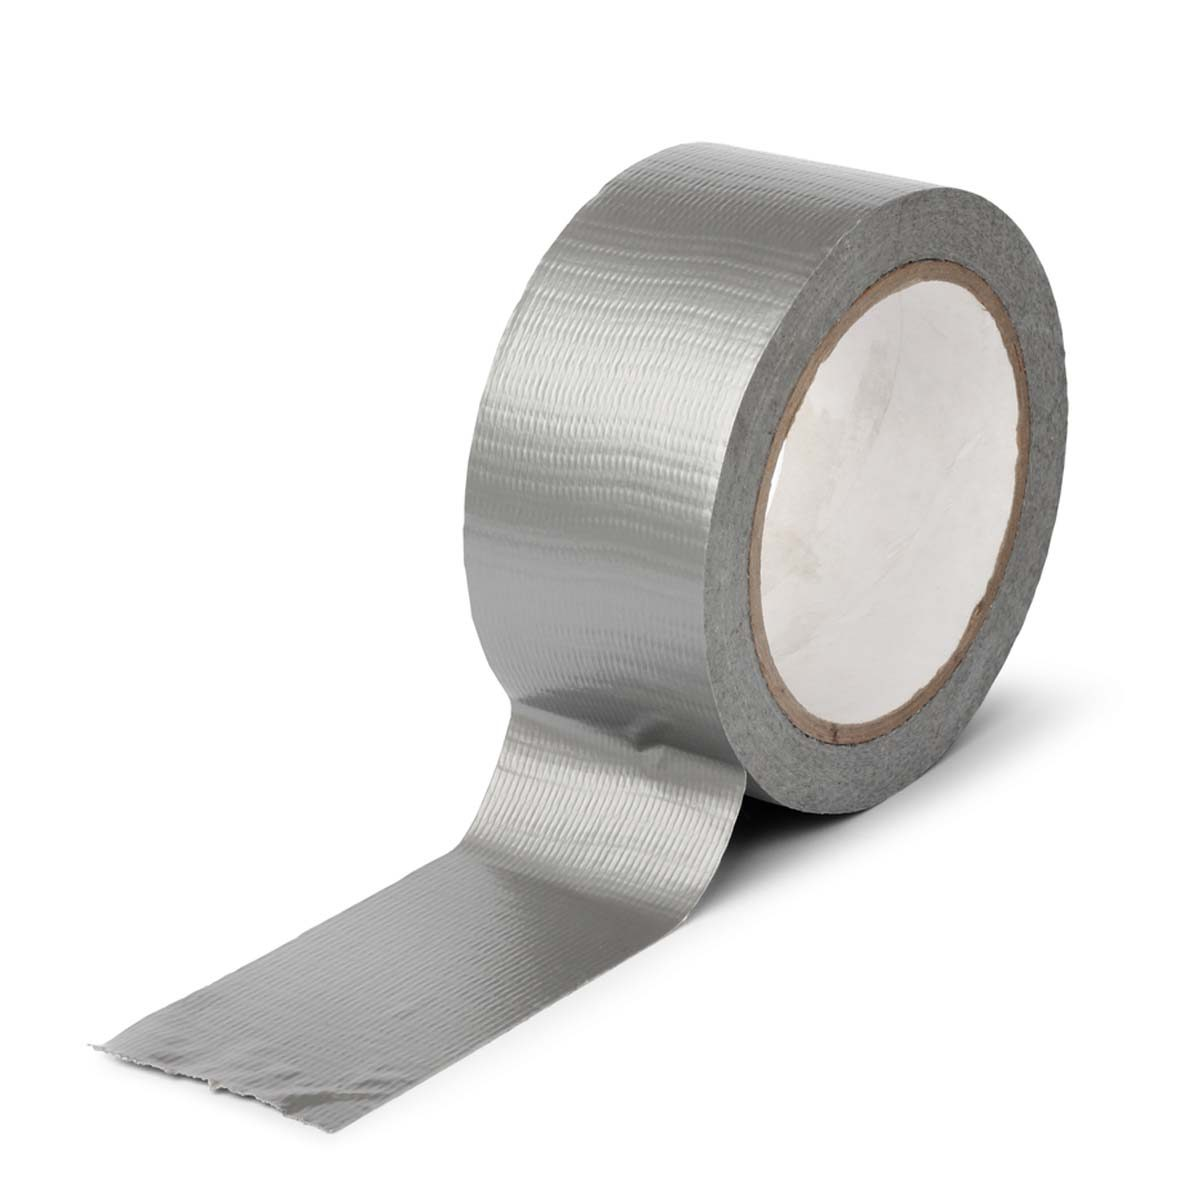 Duct Tape and Rubber Bands